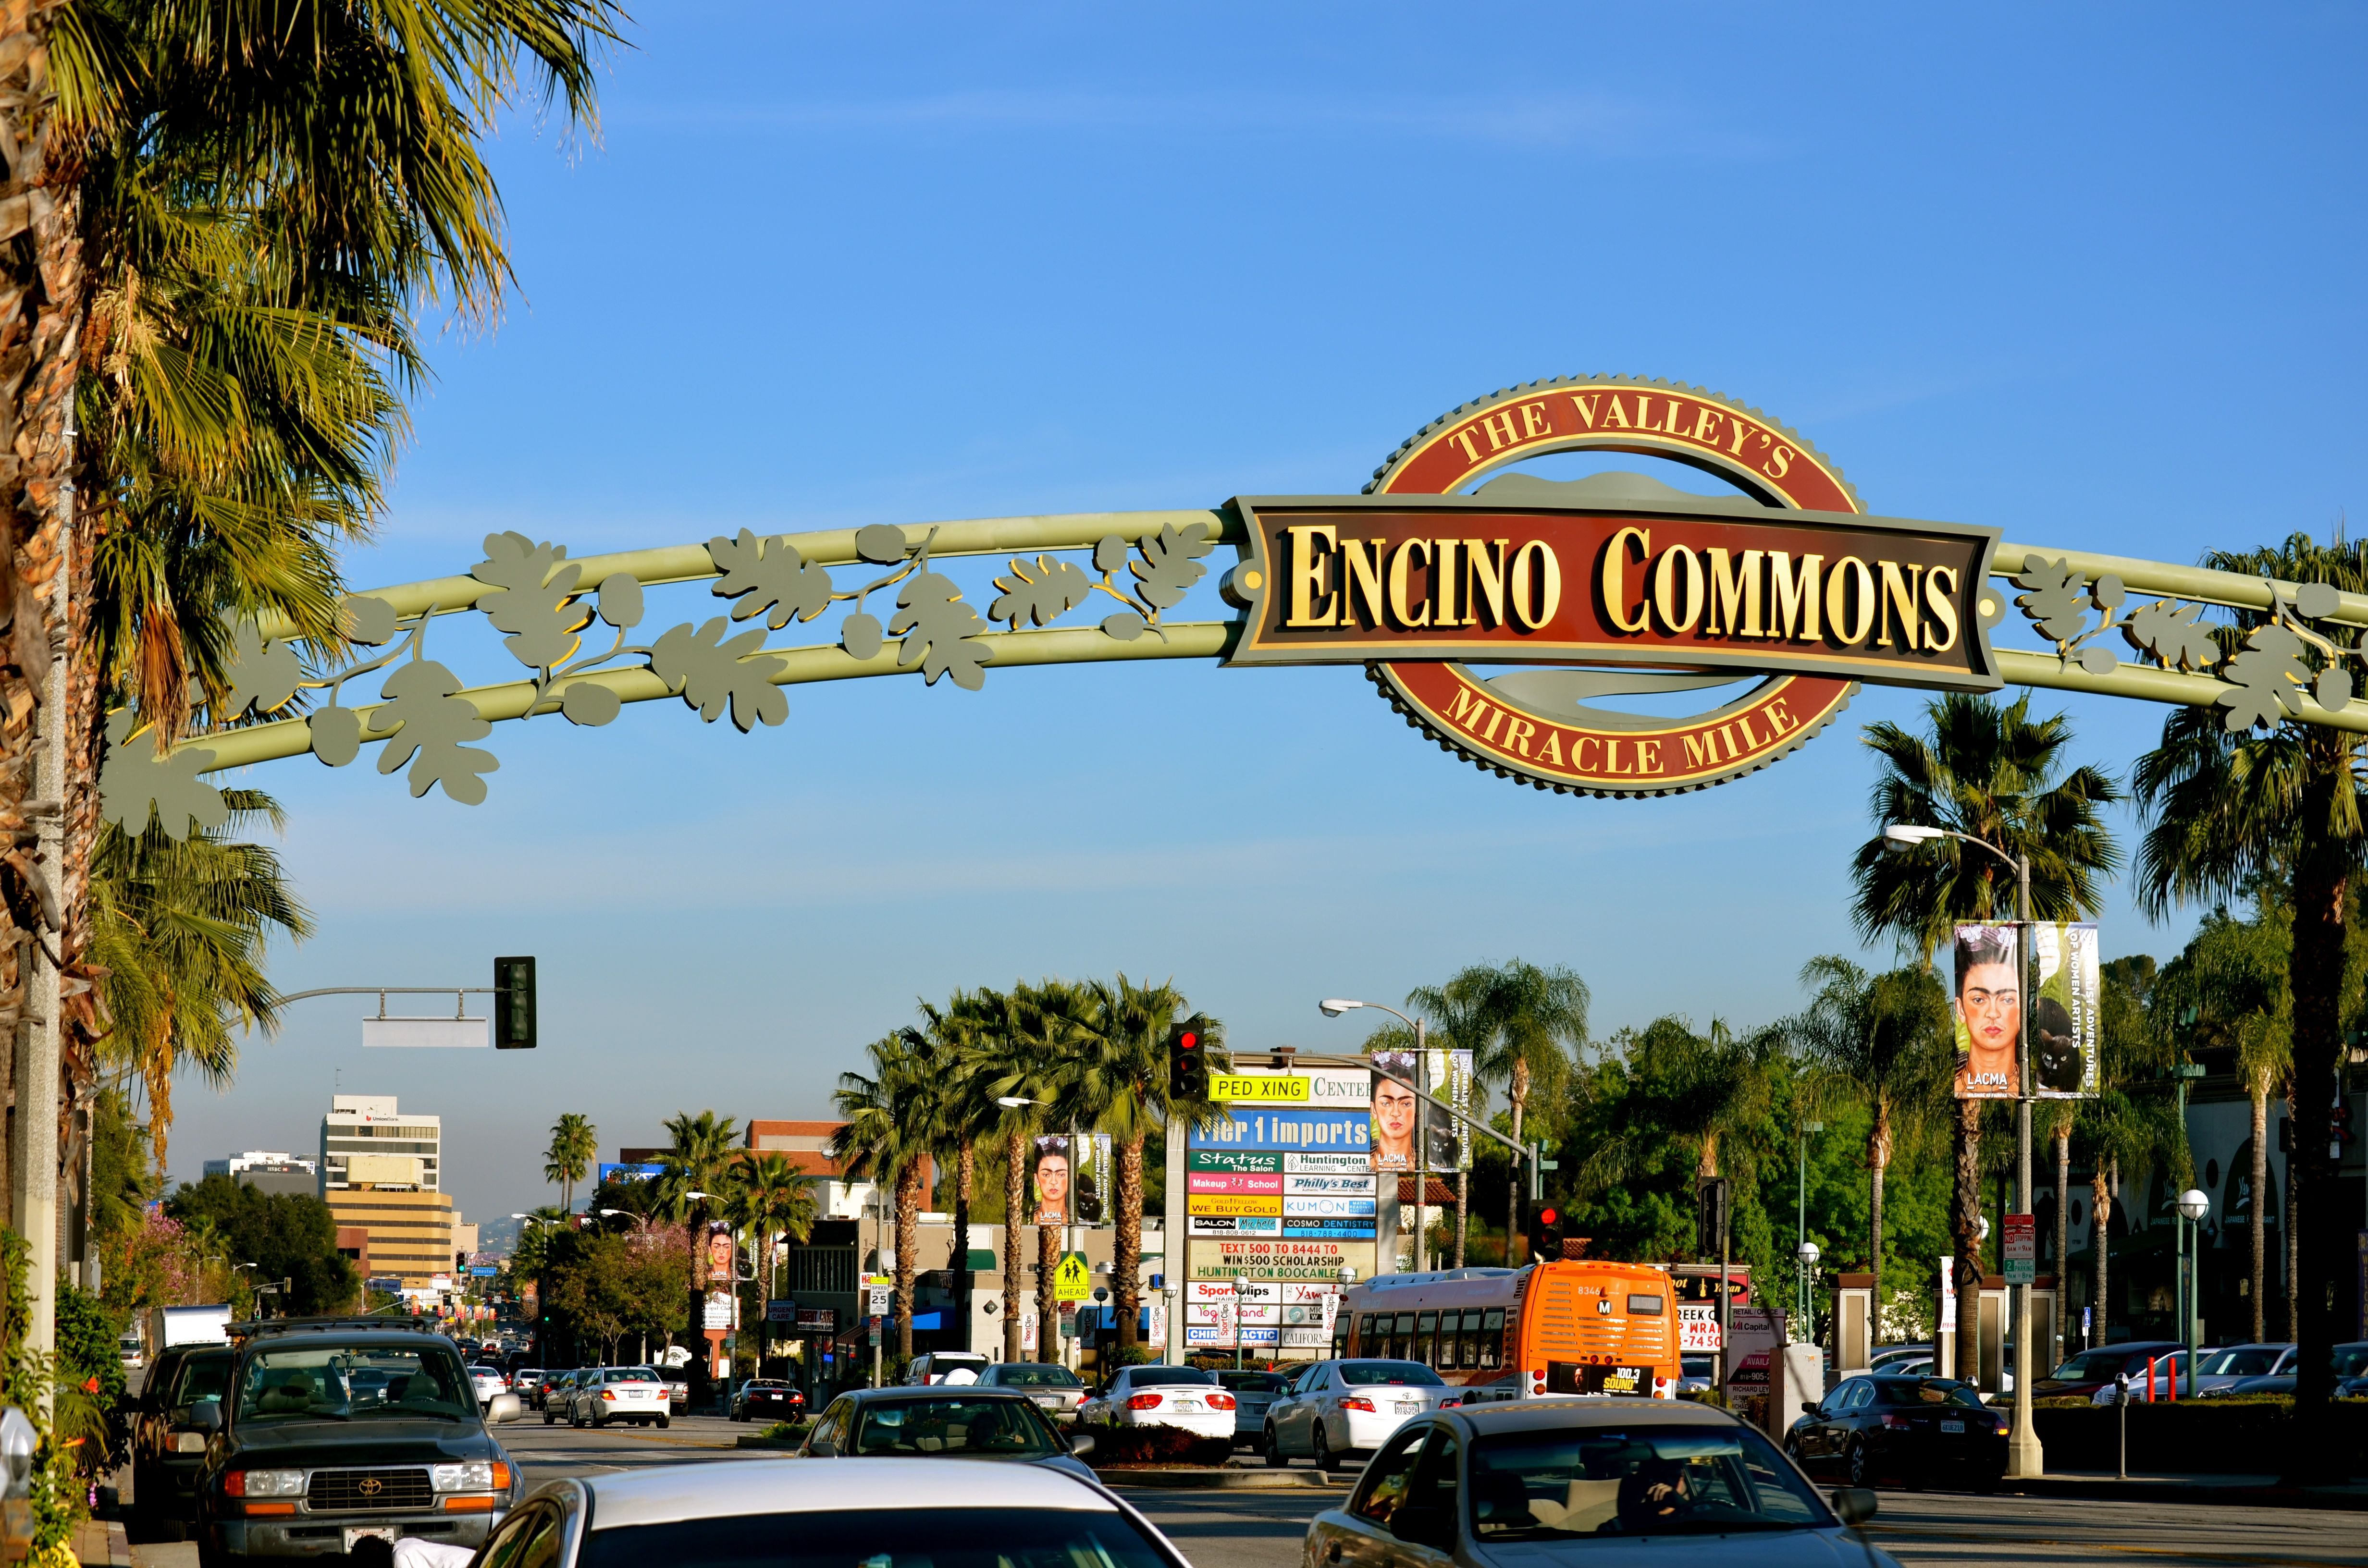 Encino commons ca ventura blvd place for shopping and plenty encino commons ca ventura blvd place for shopping and plenty restaurants solutioingenieria Choice Image